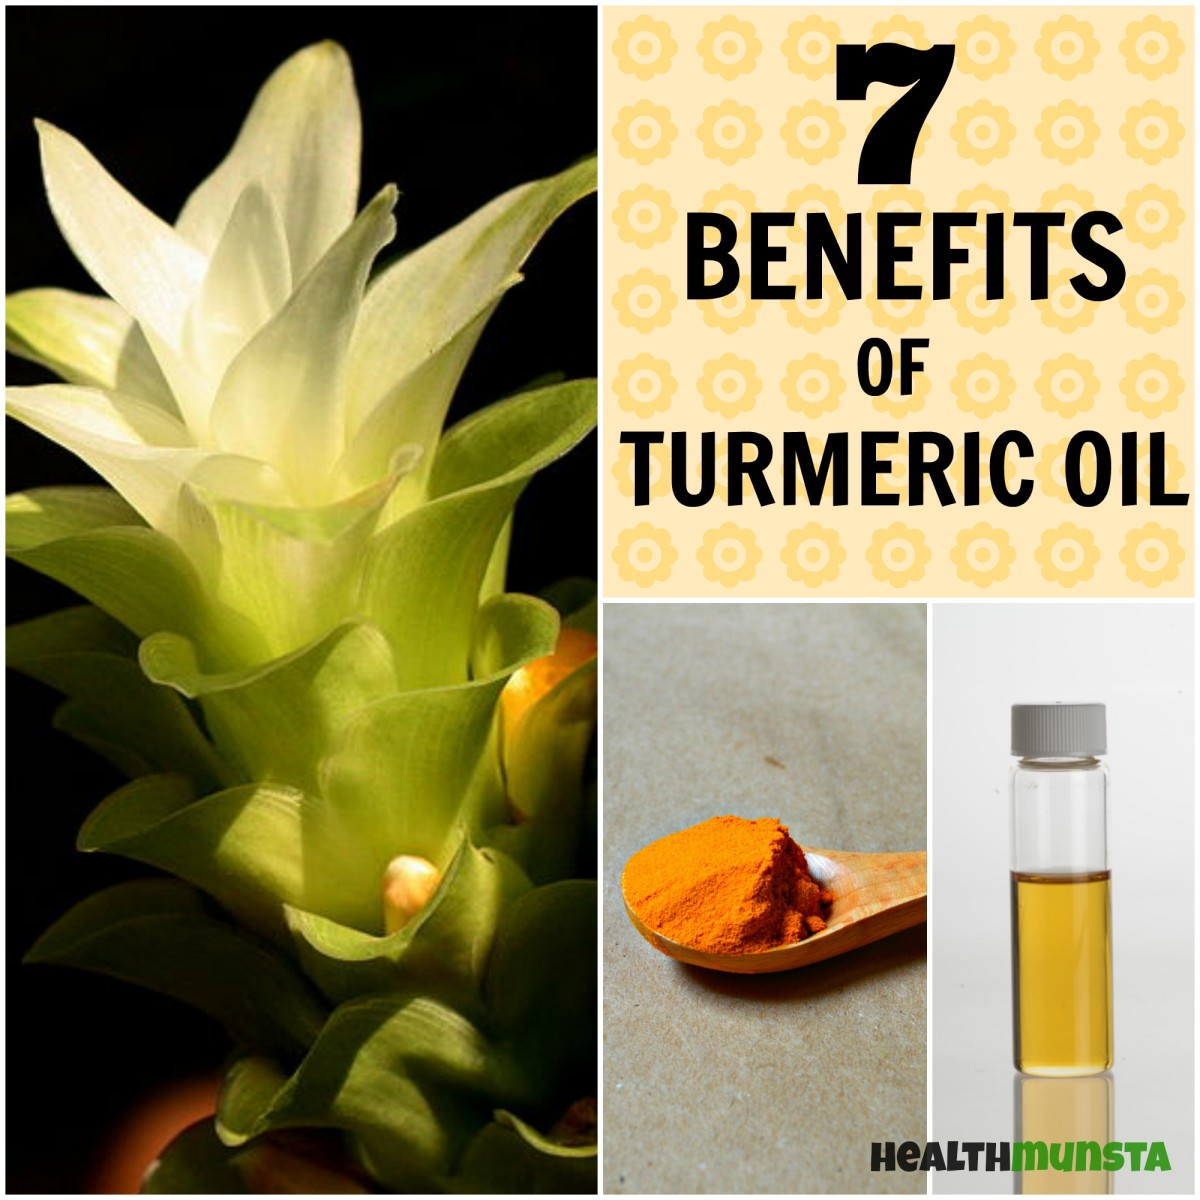 Turmeric oil is a potent oil for health and beauty - explore it's benefits here.